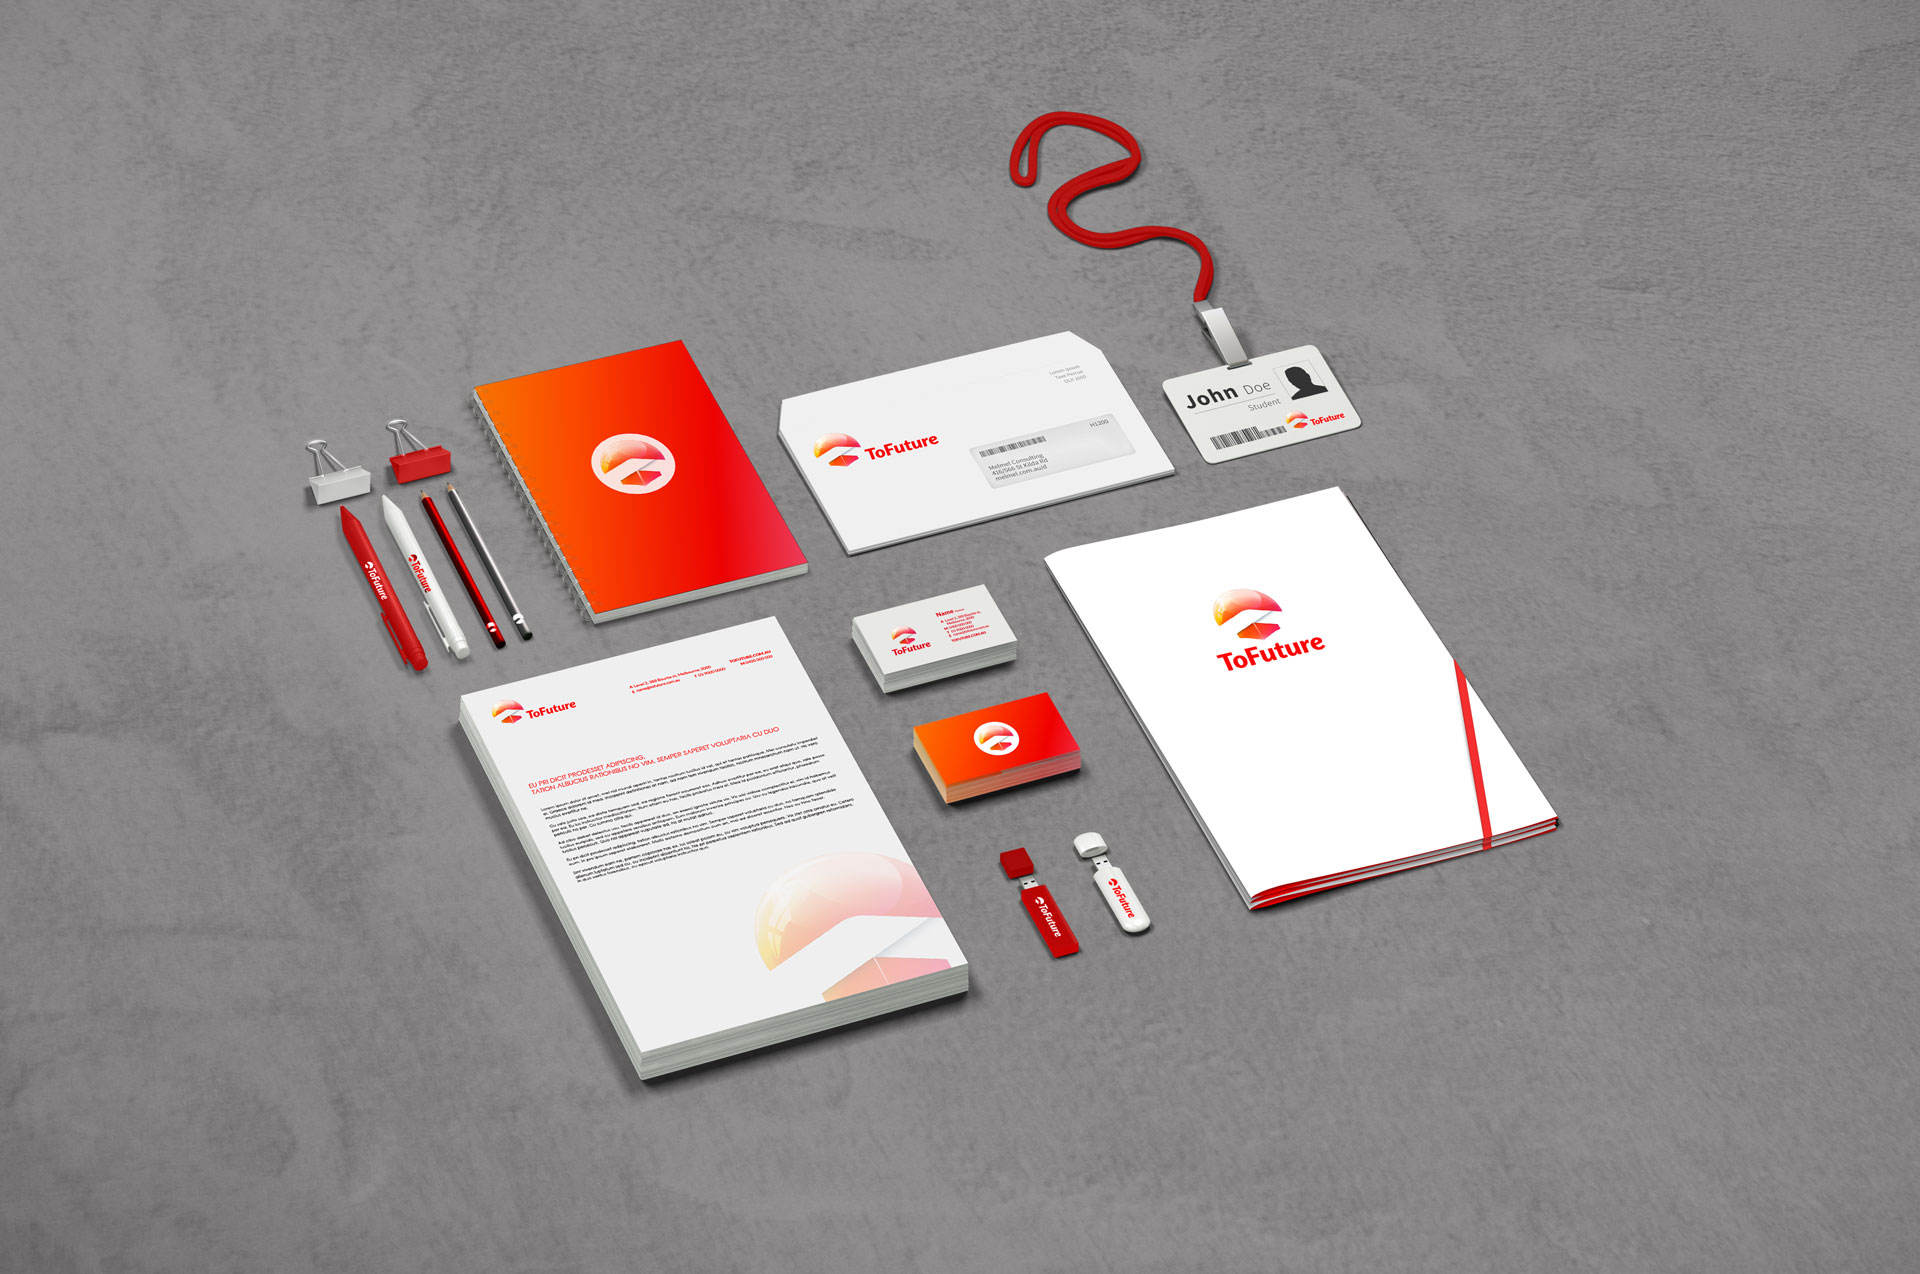 education branding by Z Creative Studio Branding & Graphic Design Melbourne